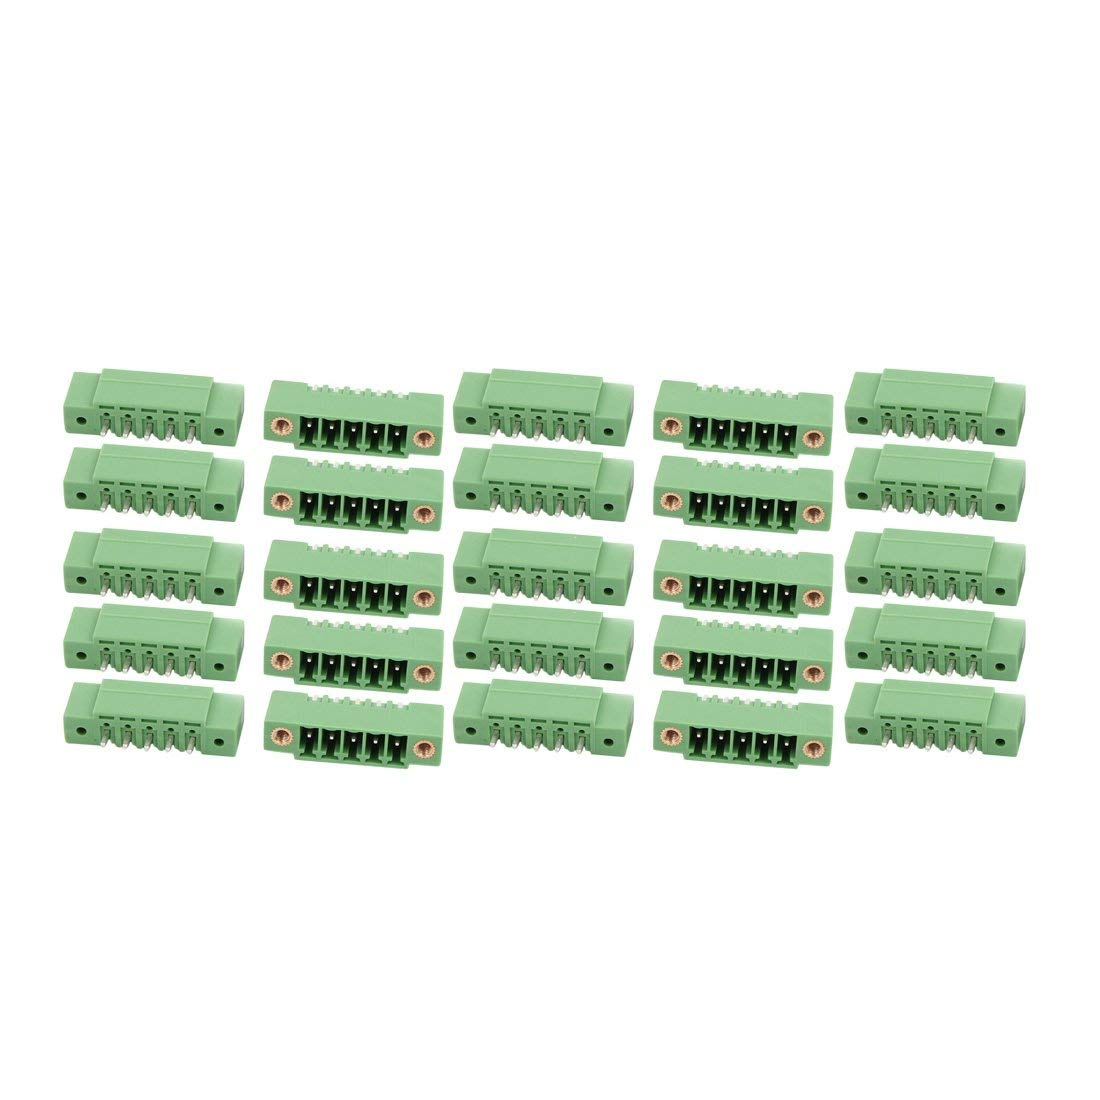 uxcell 25Pcs AC300V 8A 3.5mm Pitch 5P Terminal Block Wire Connector for PCB Mounting Green